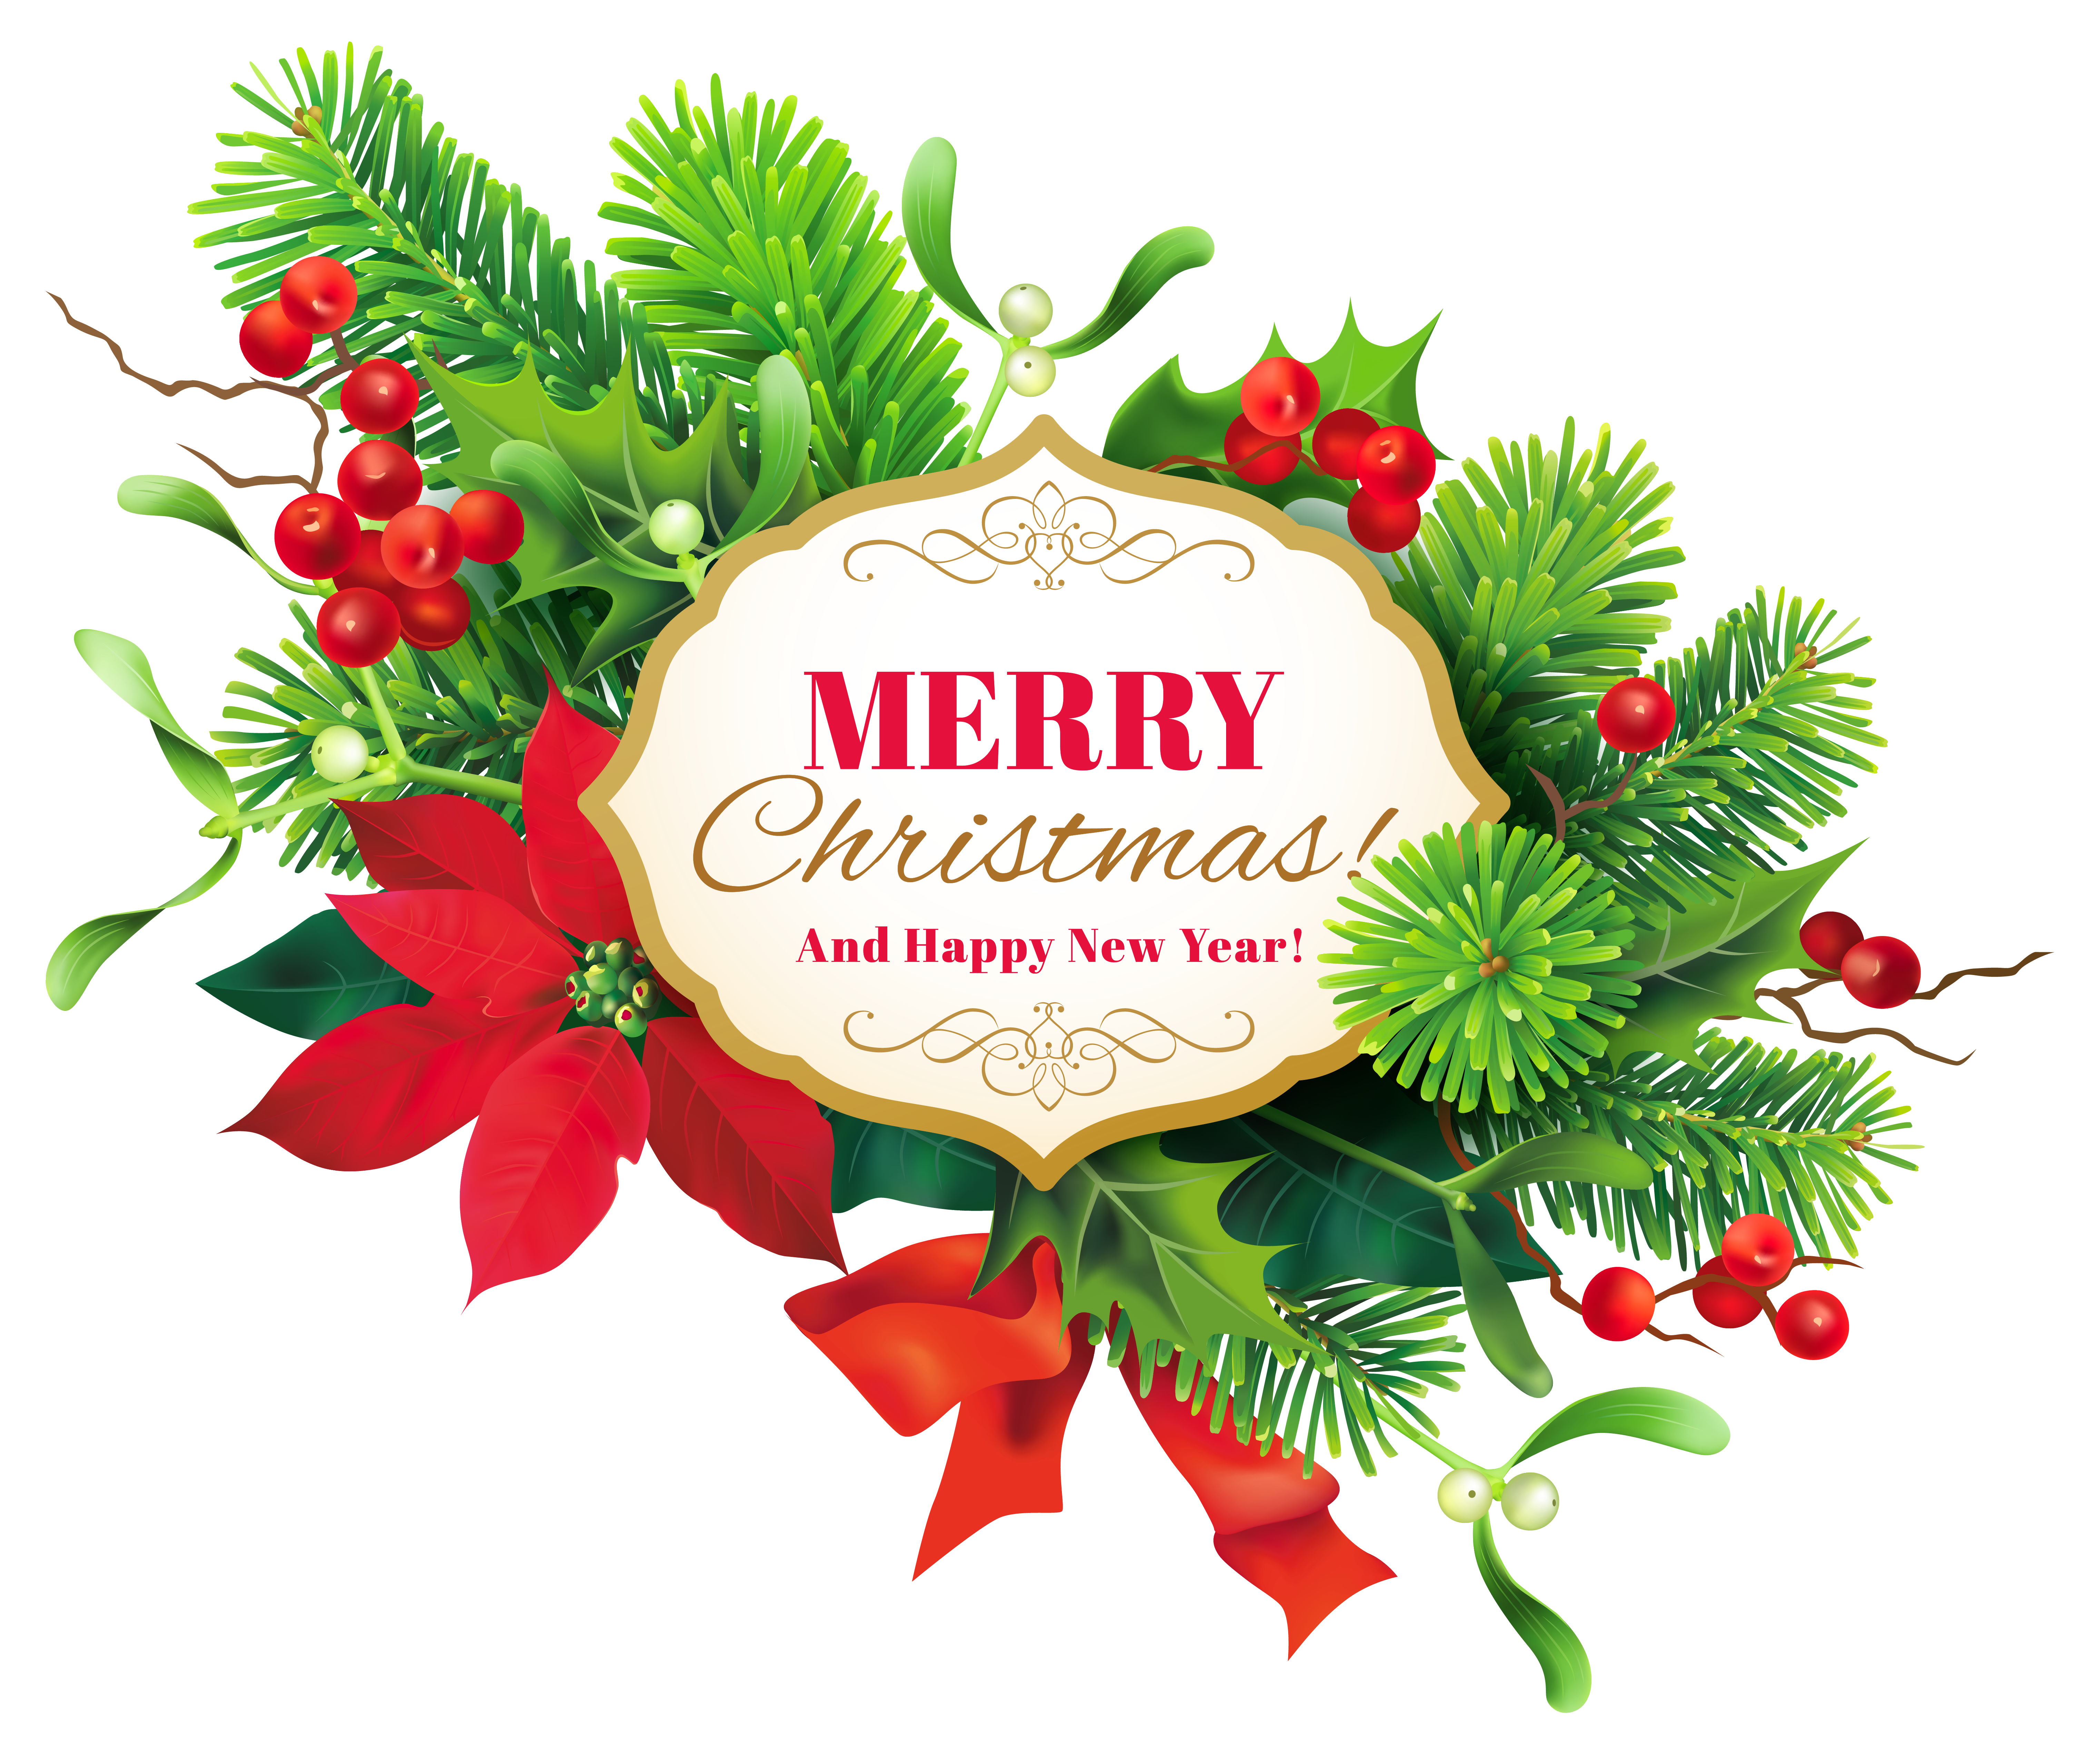 Merry Christmas Decor PNG Clipart Image.